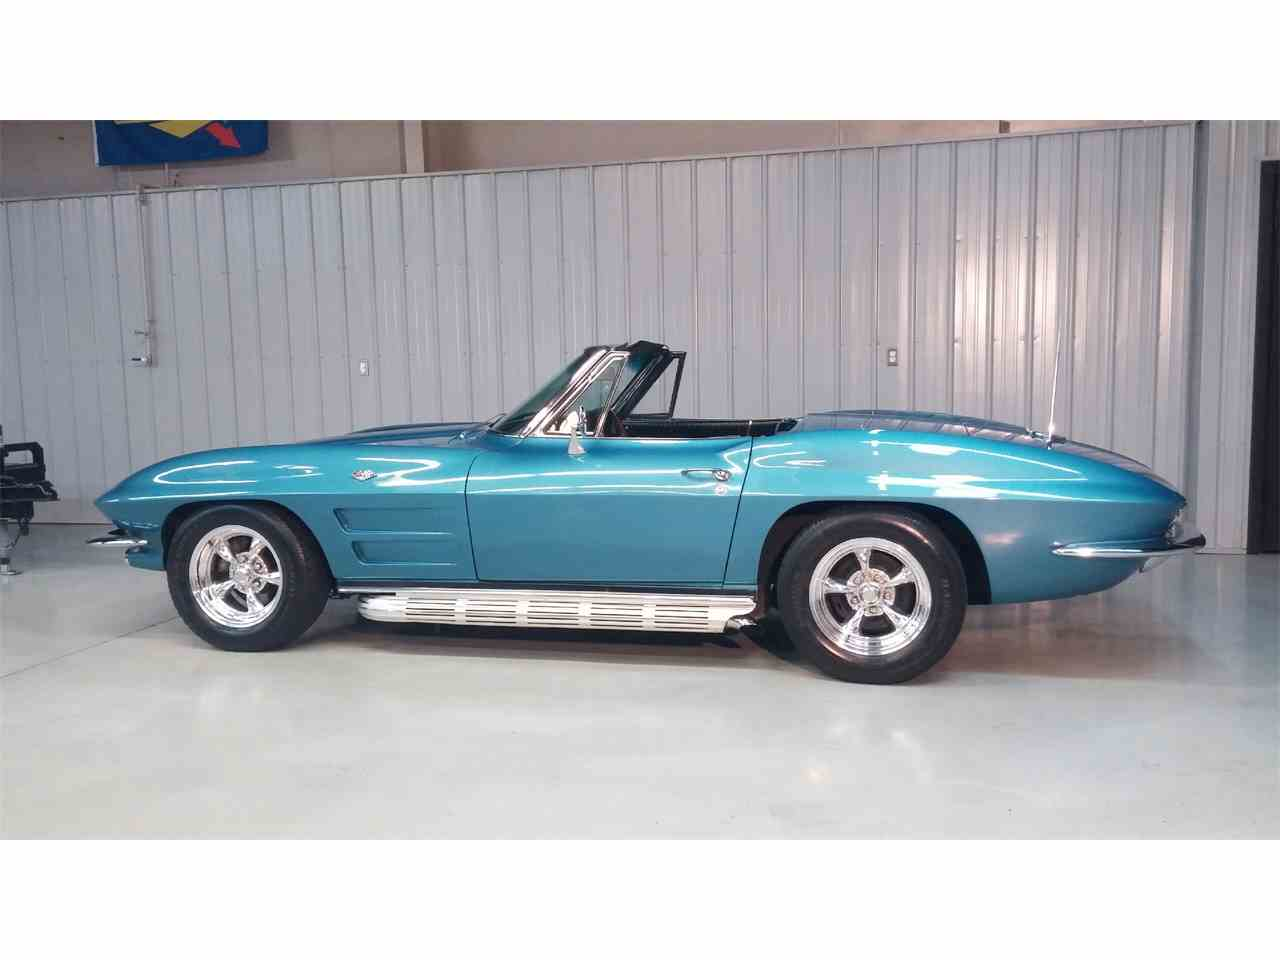 Large Picture of 1964 Chevrolet Corvette located in Tennessee - $49,000.00 - MC5G